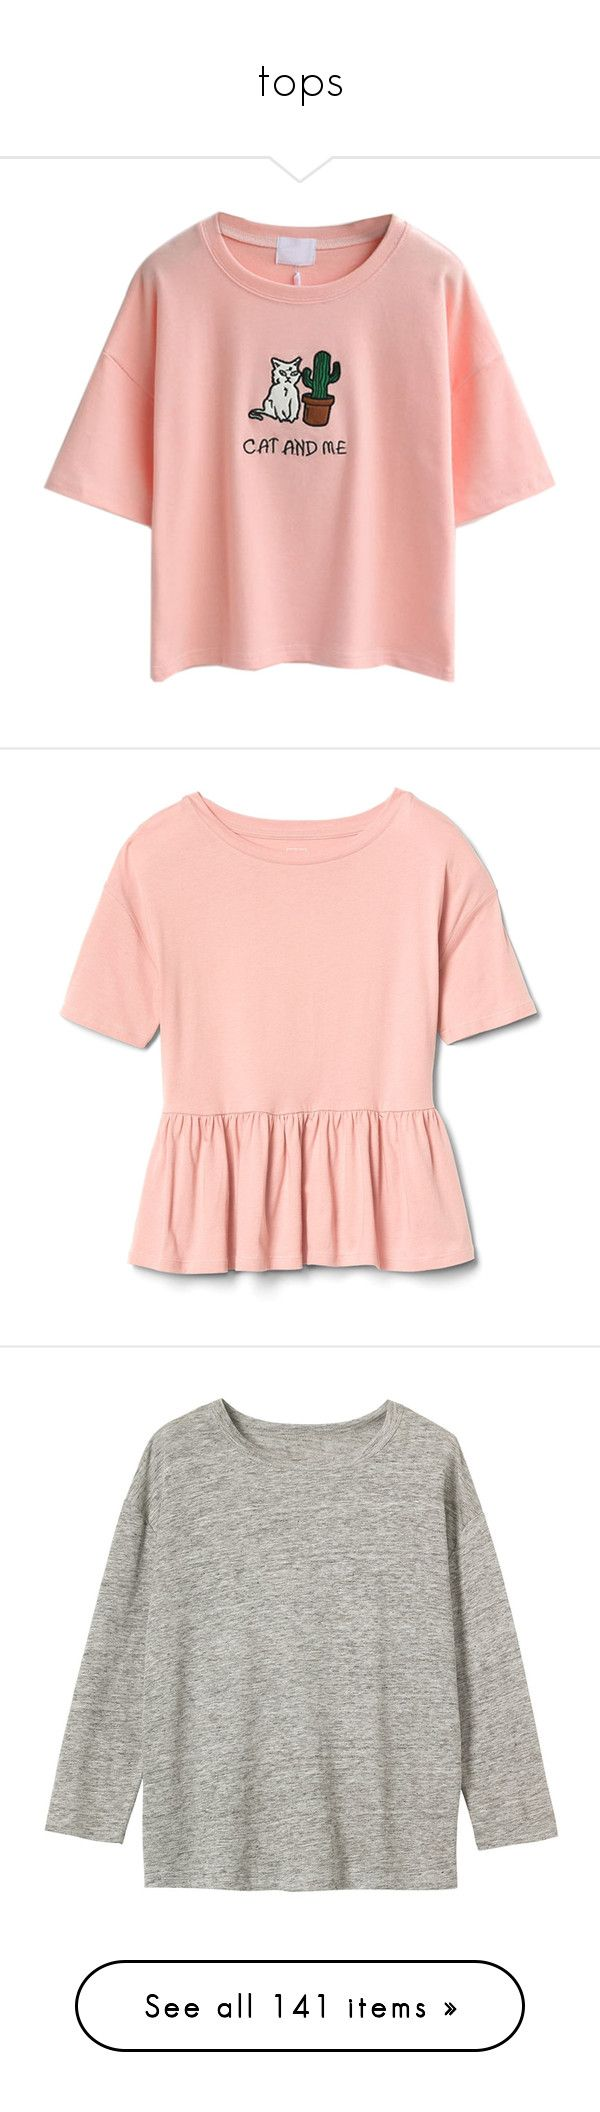 """""""tops"""" by pandadance ❤ liked on Polyvore featuring tops, t-shirts, shirts, blusas, cotton shirts, pink t shirt, embroidery t shirts, cotton t shirts, short sleeve shirts and flounce top"""